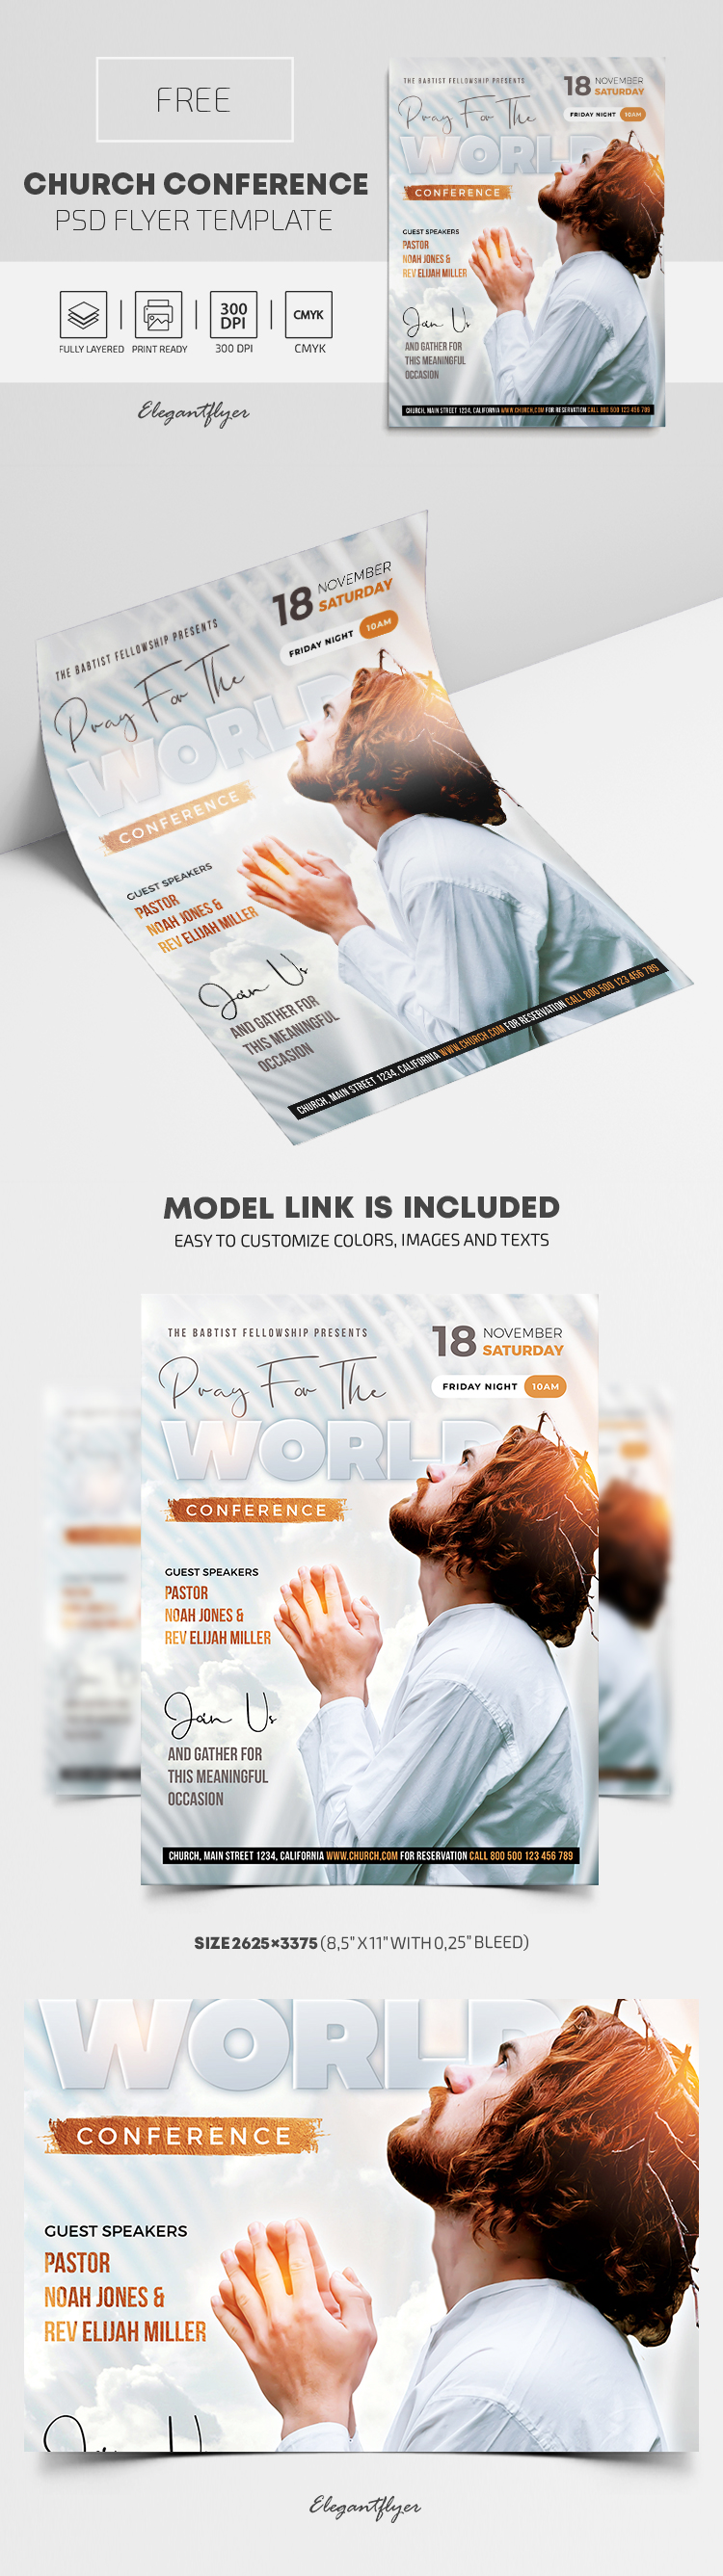 Church Conference – Free Flyer PSD Template